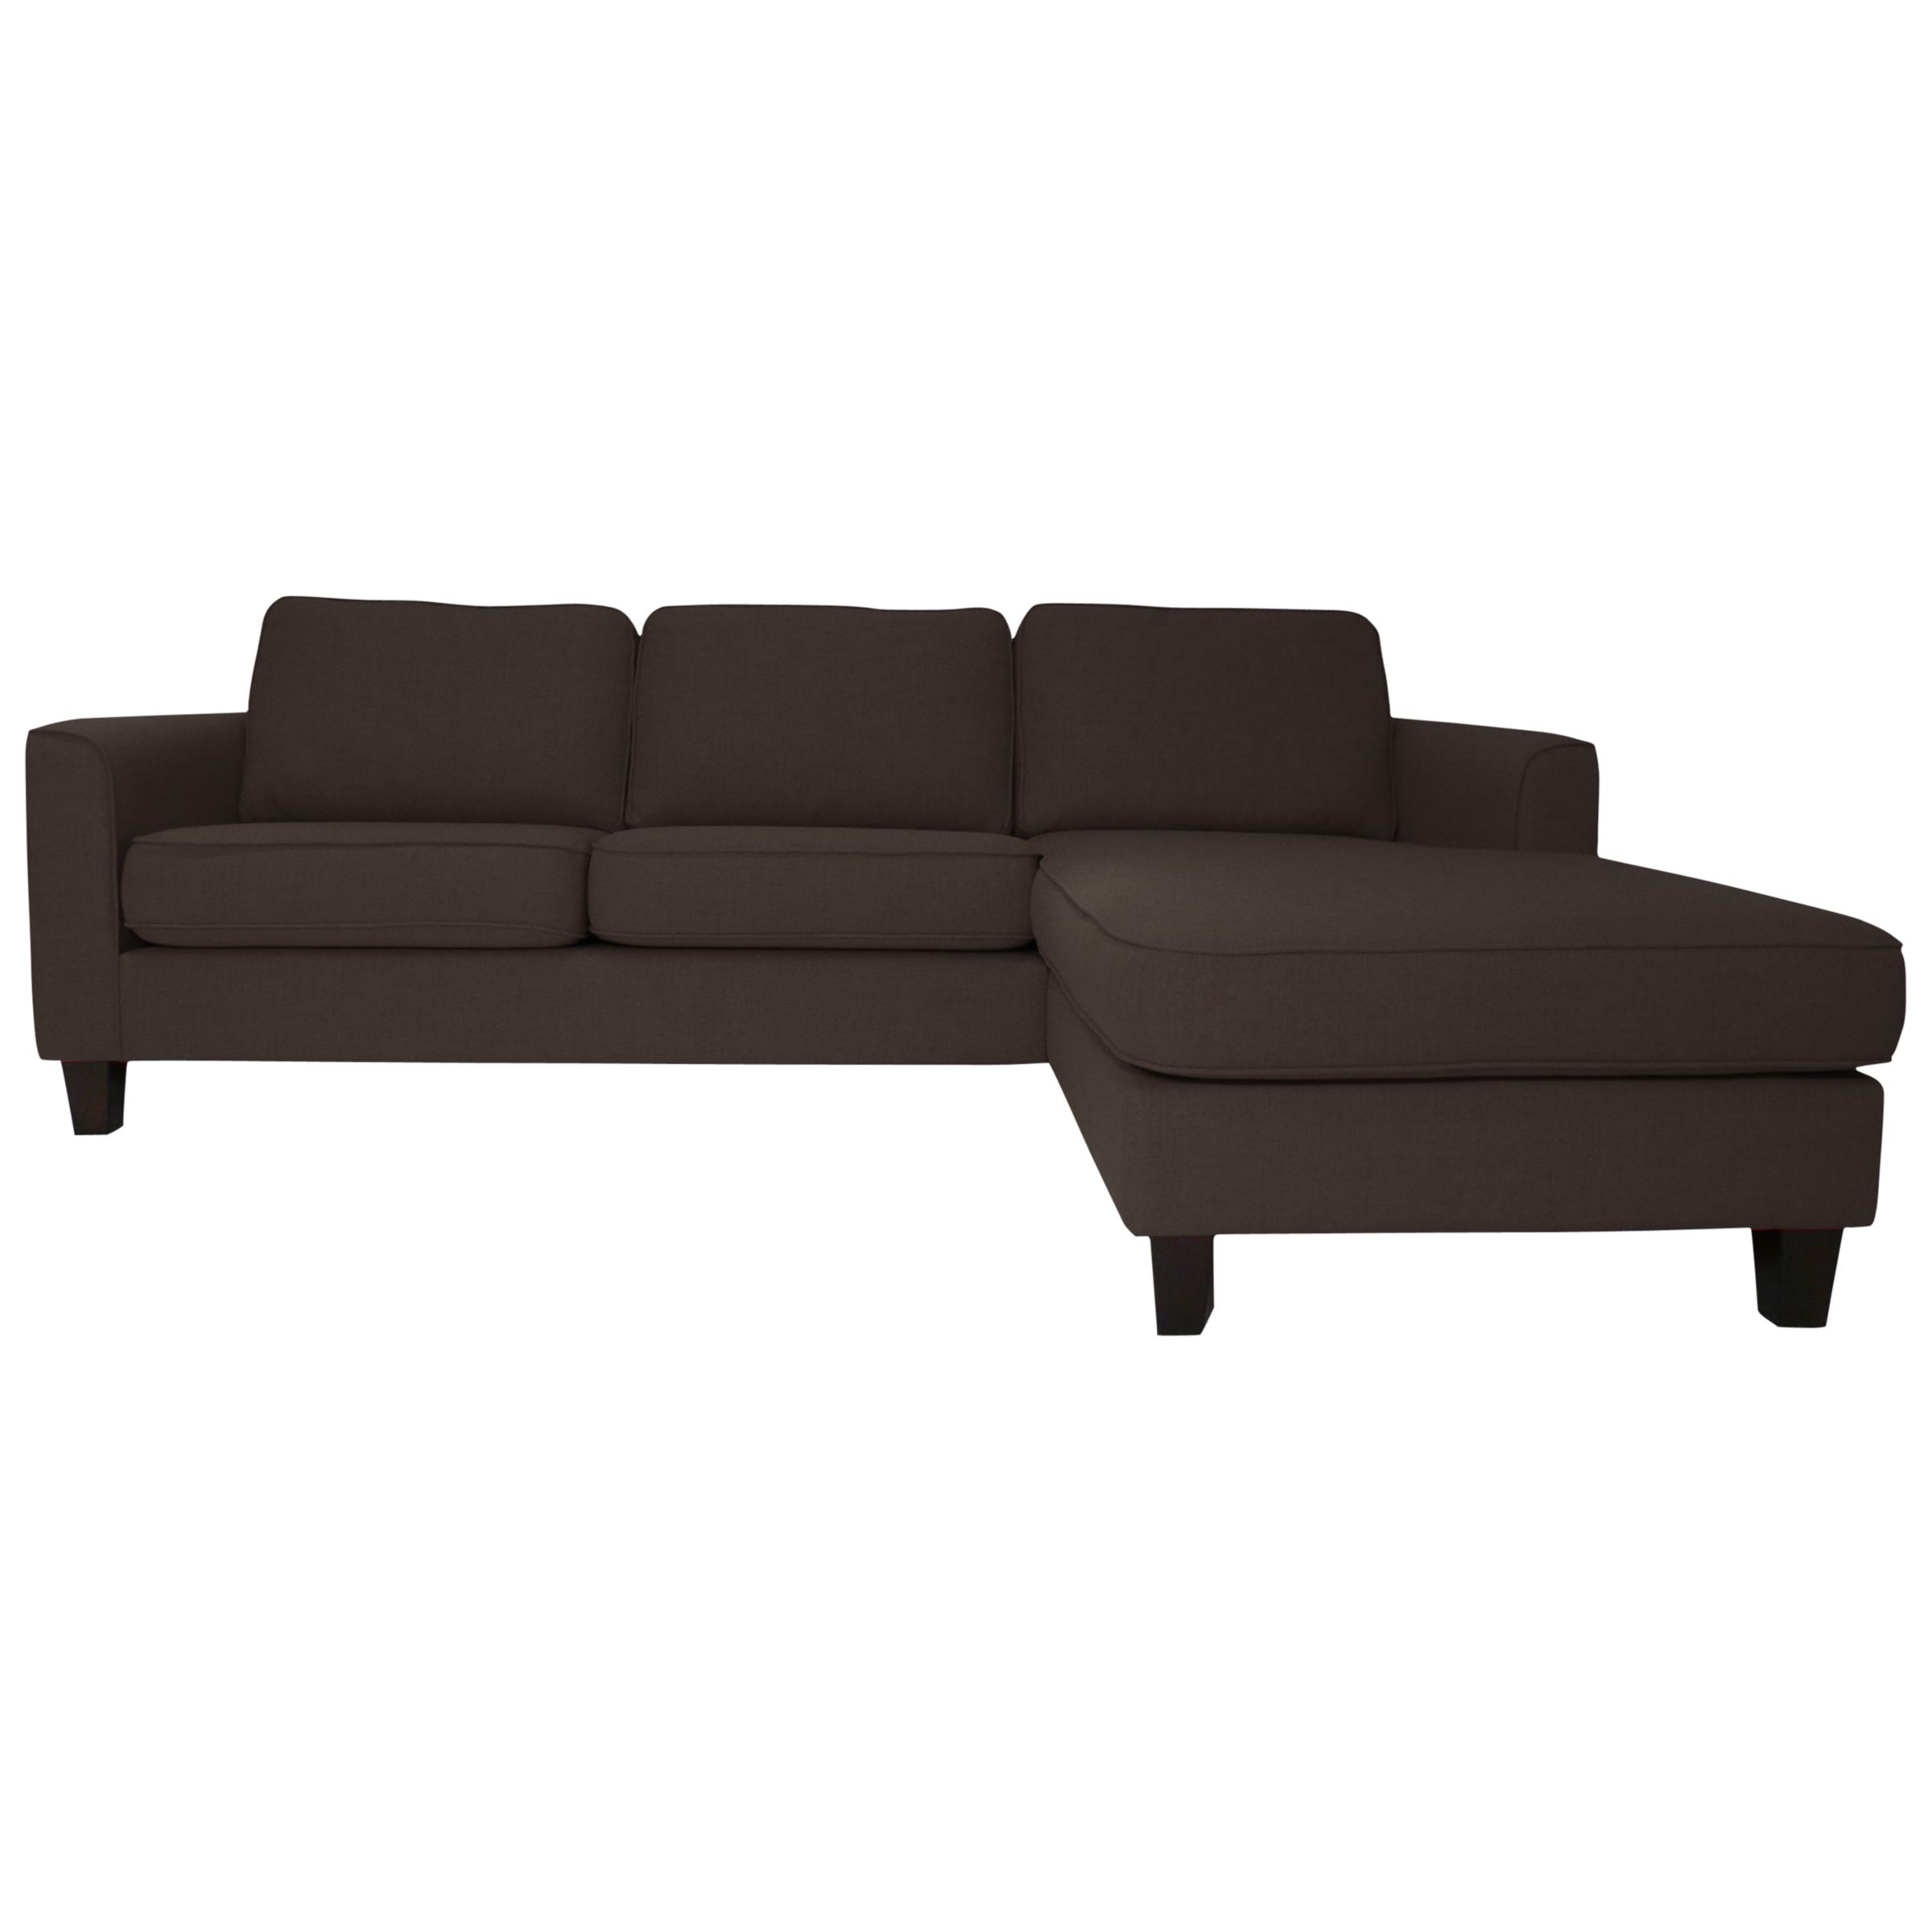 John lewis portia lhf chaise end sofa charcoal review for Chaise end sofa uk